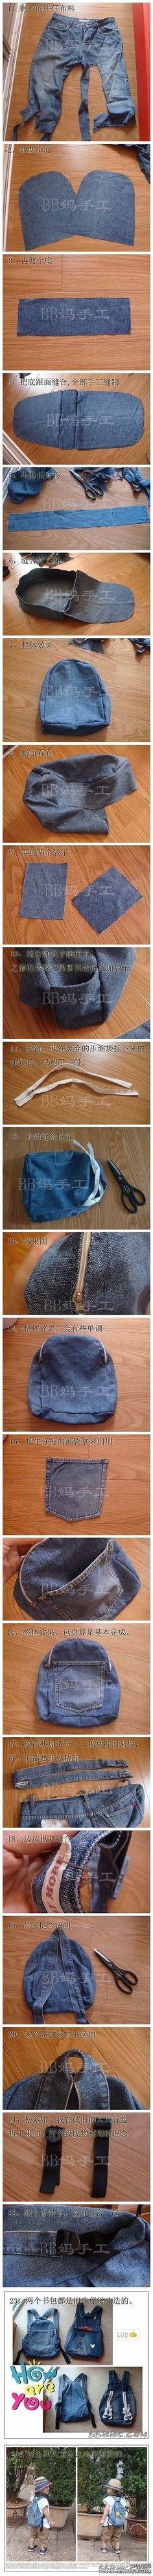 What to do with old jeans - make a small backpack